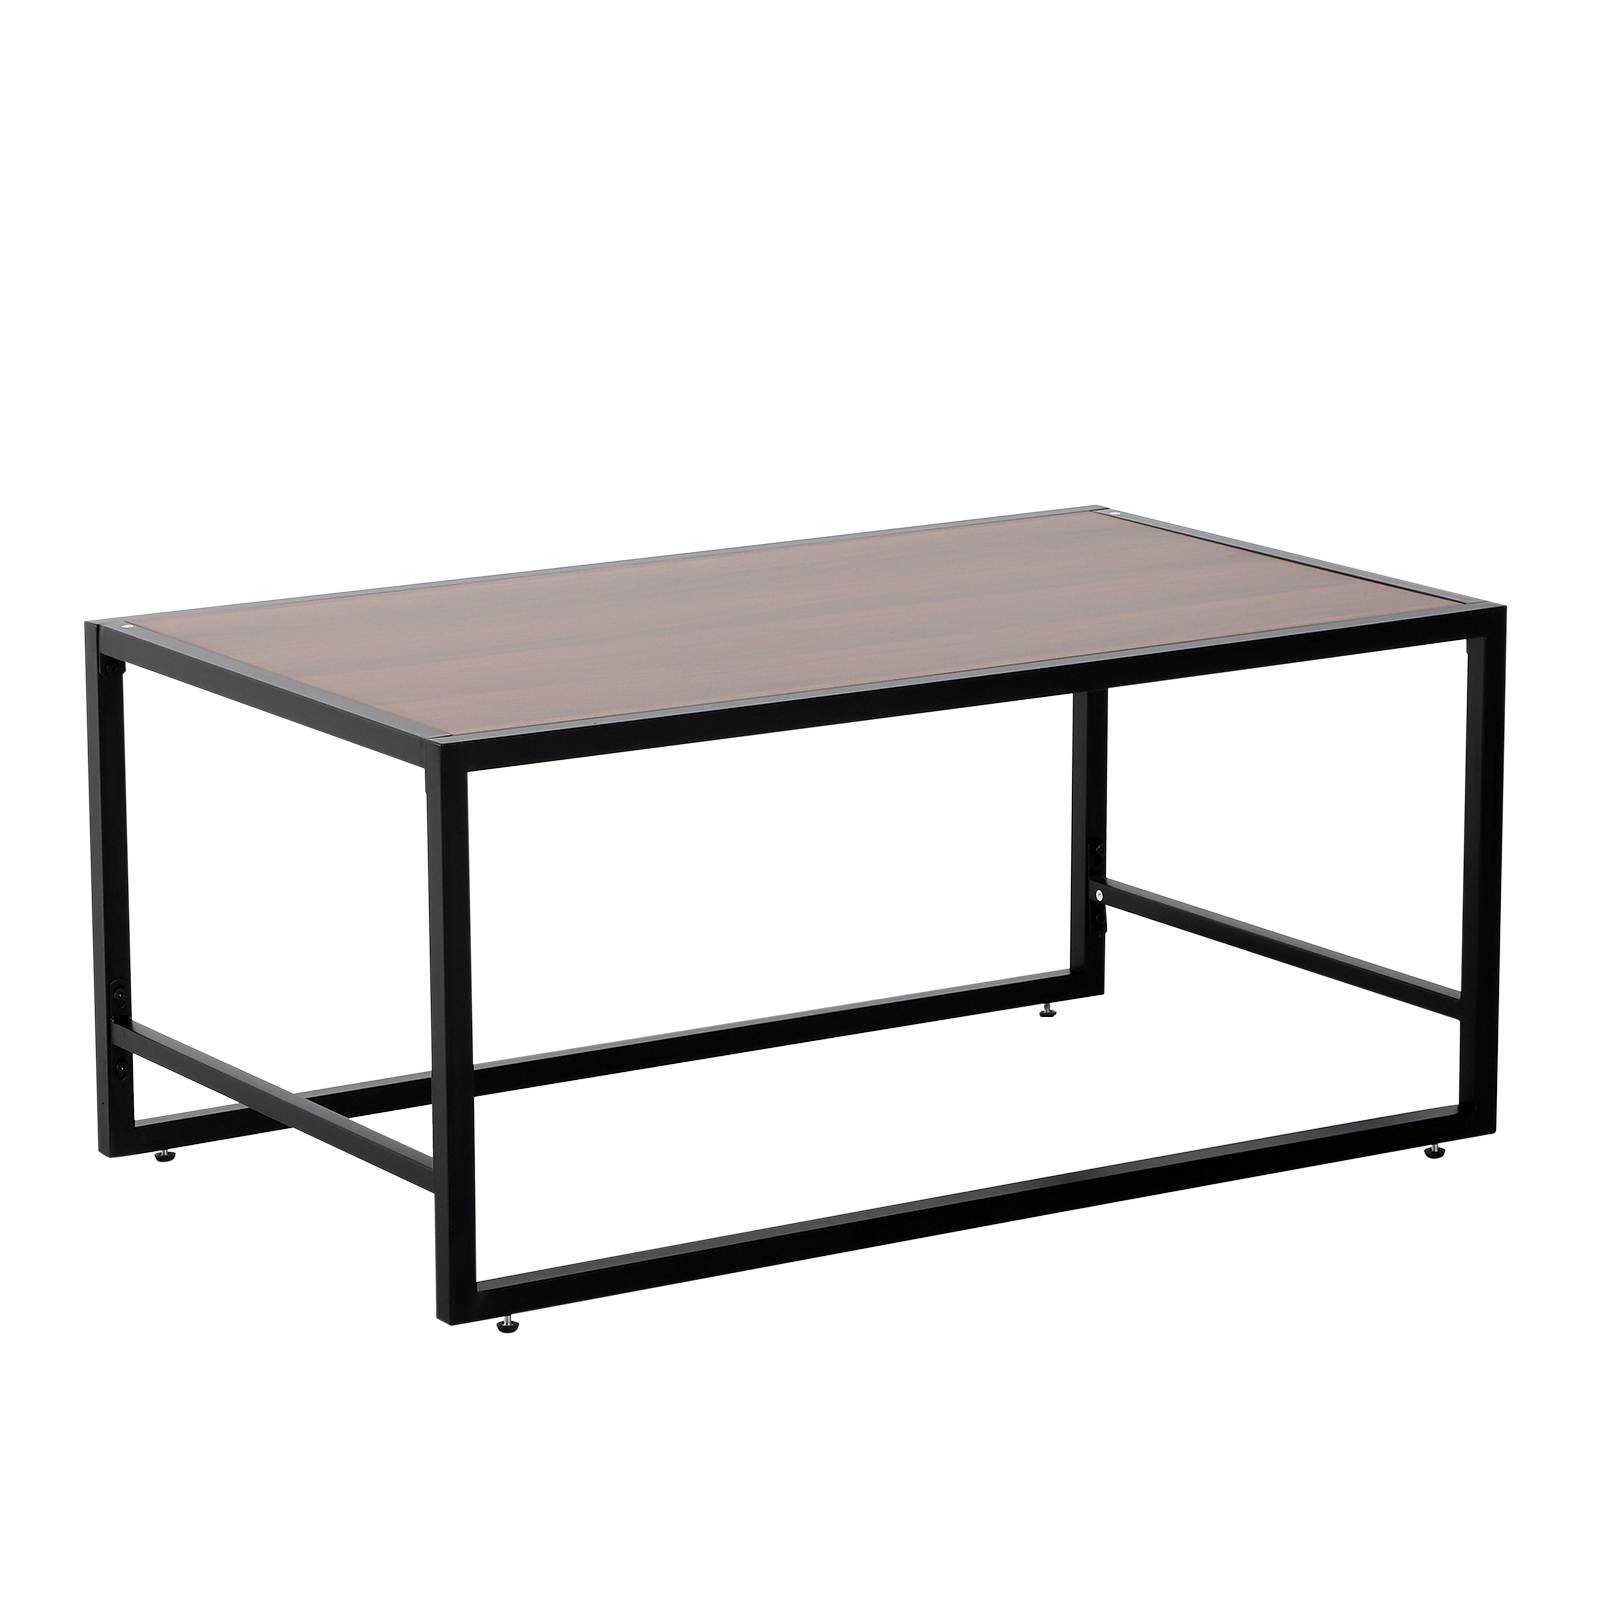 HOMCOM Coffee Table Design Vintage Living Room Living Room Wood And Black 106x61x47.5 Cm